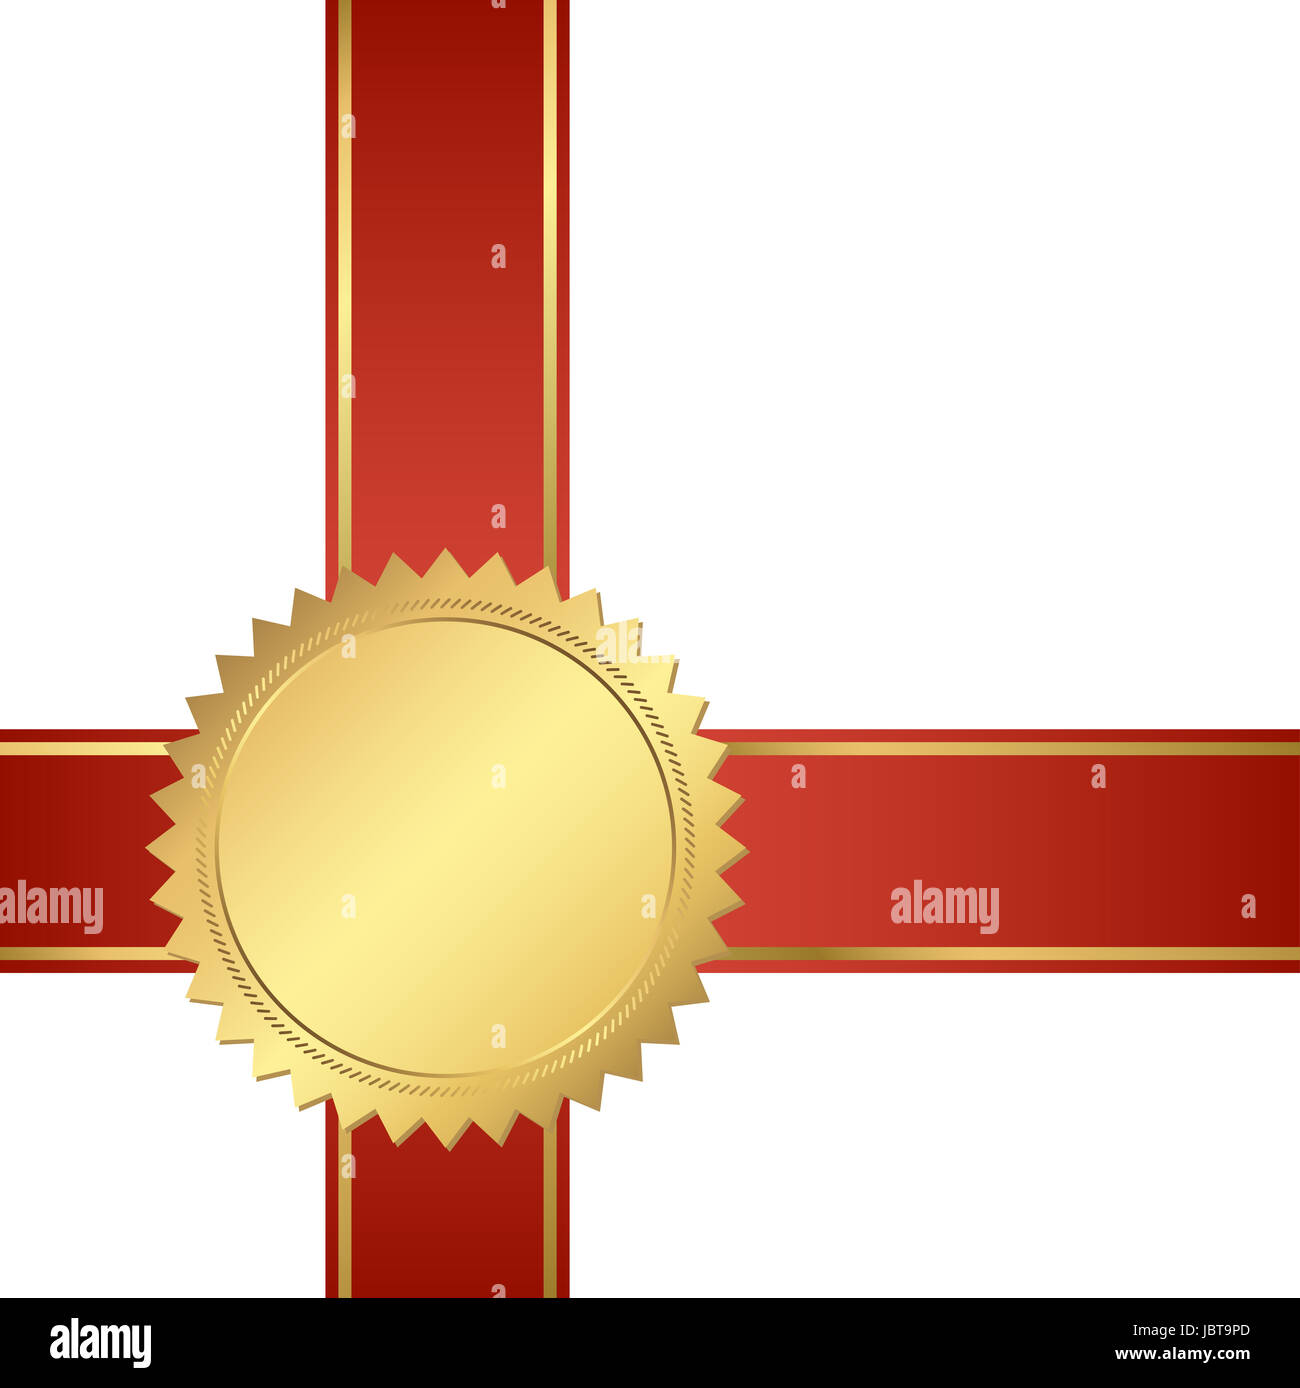 seal of quality template with ribbons Stock Photo, Royalty Free ...